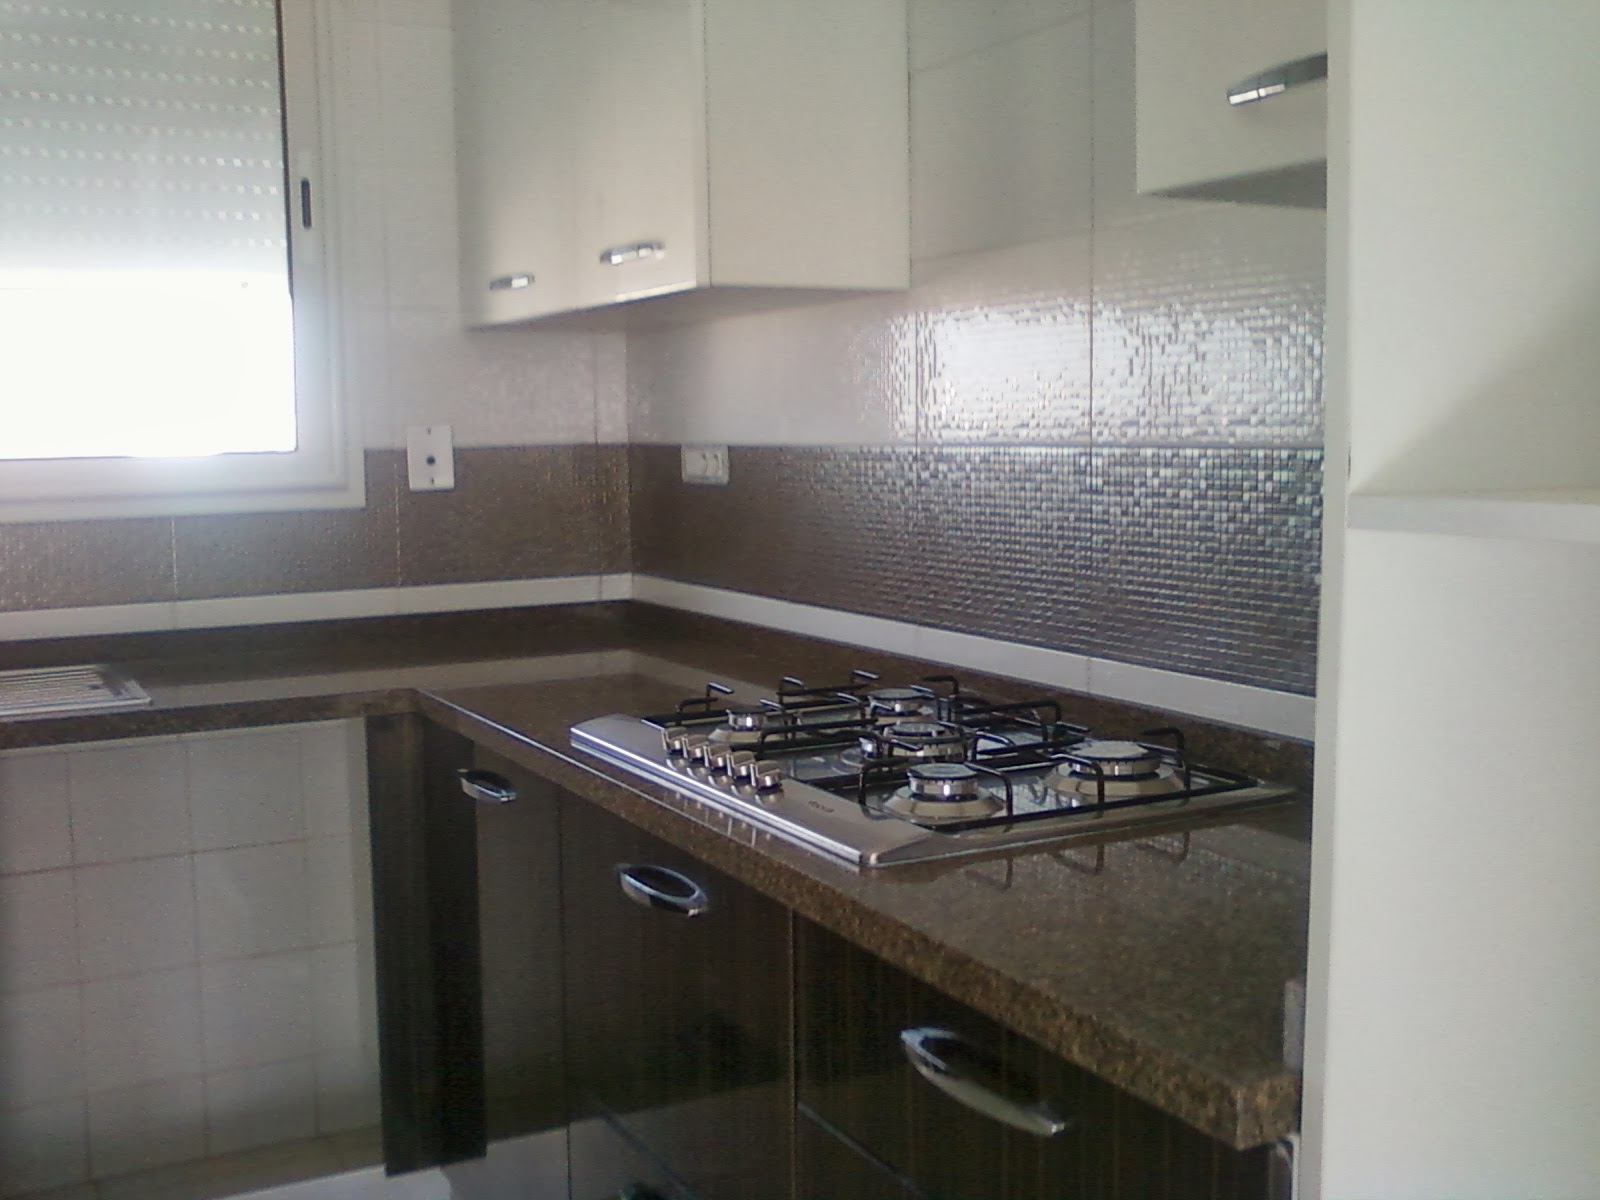 Appartement s 2 vendre ain zaghouan nord tunis for Tunisie cuisine equipee